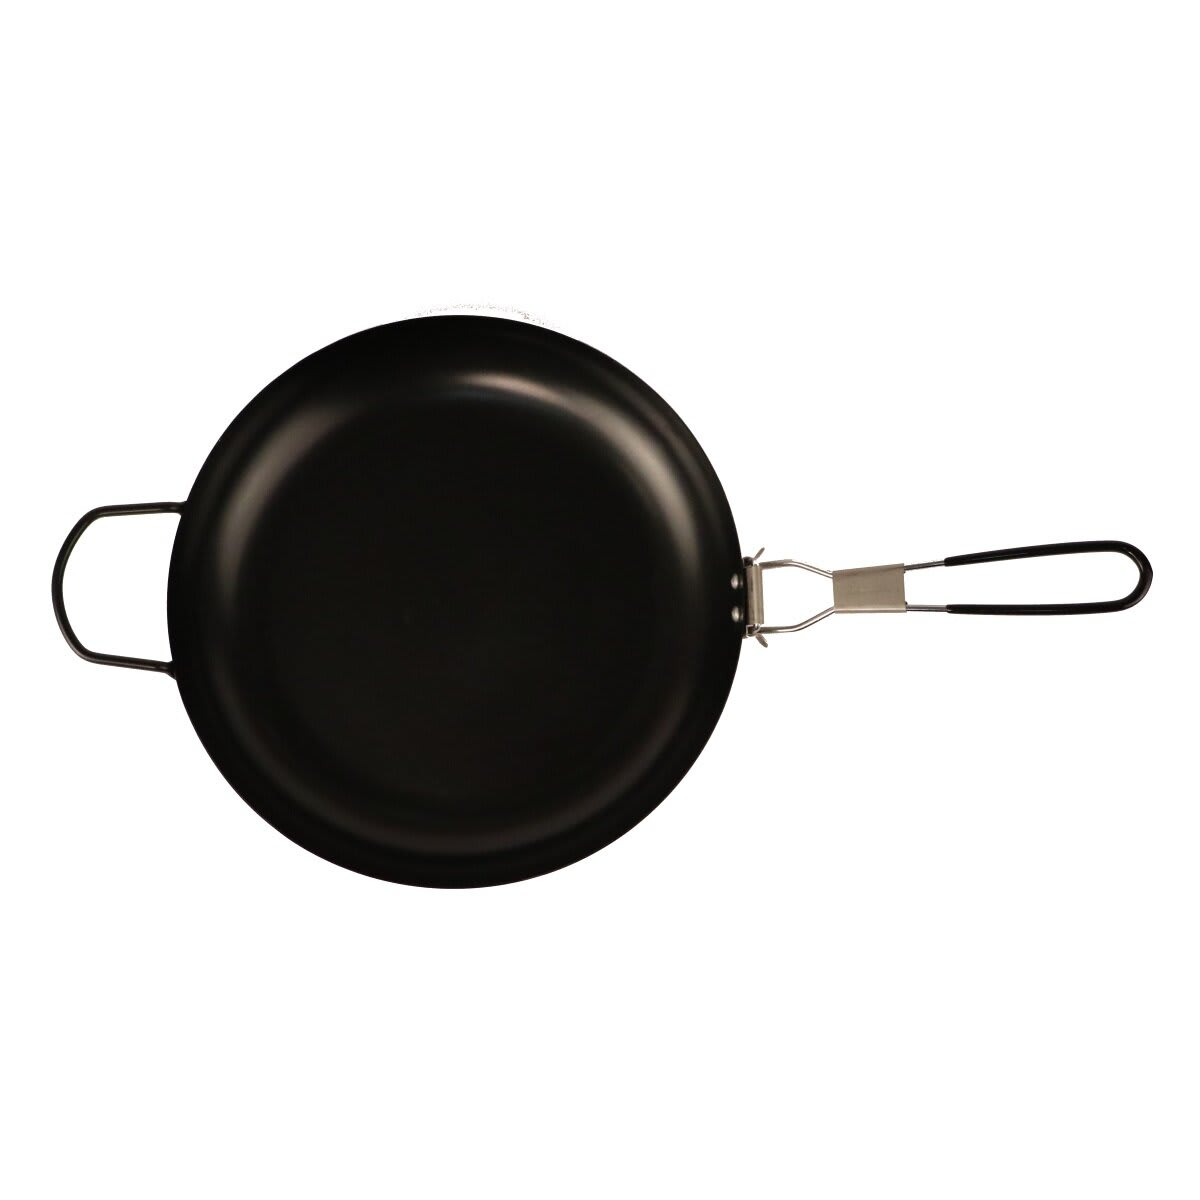 Natural Instincts 9inch Frying Pan